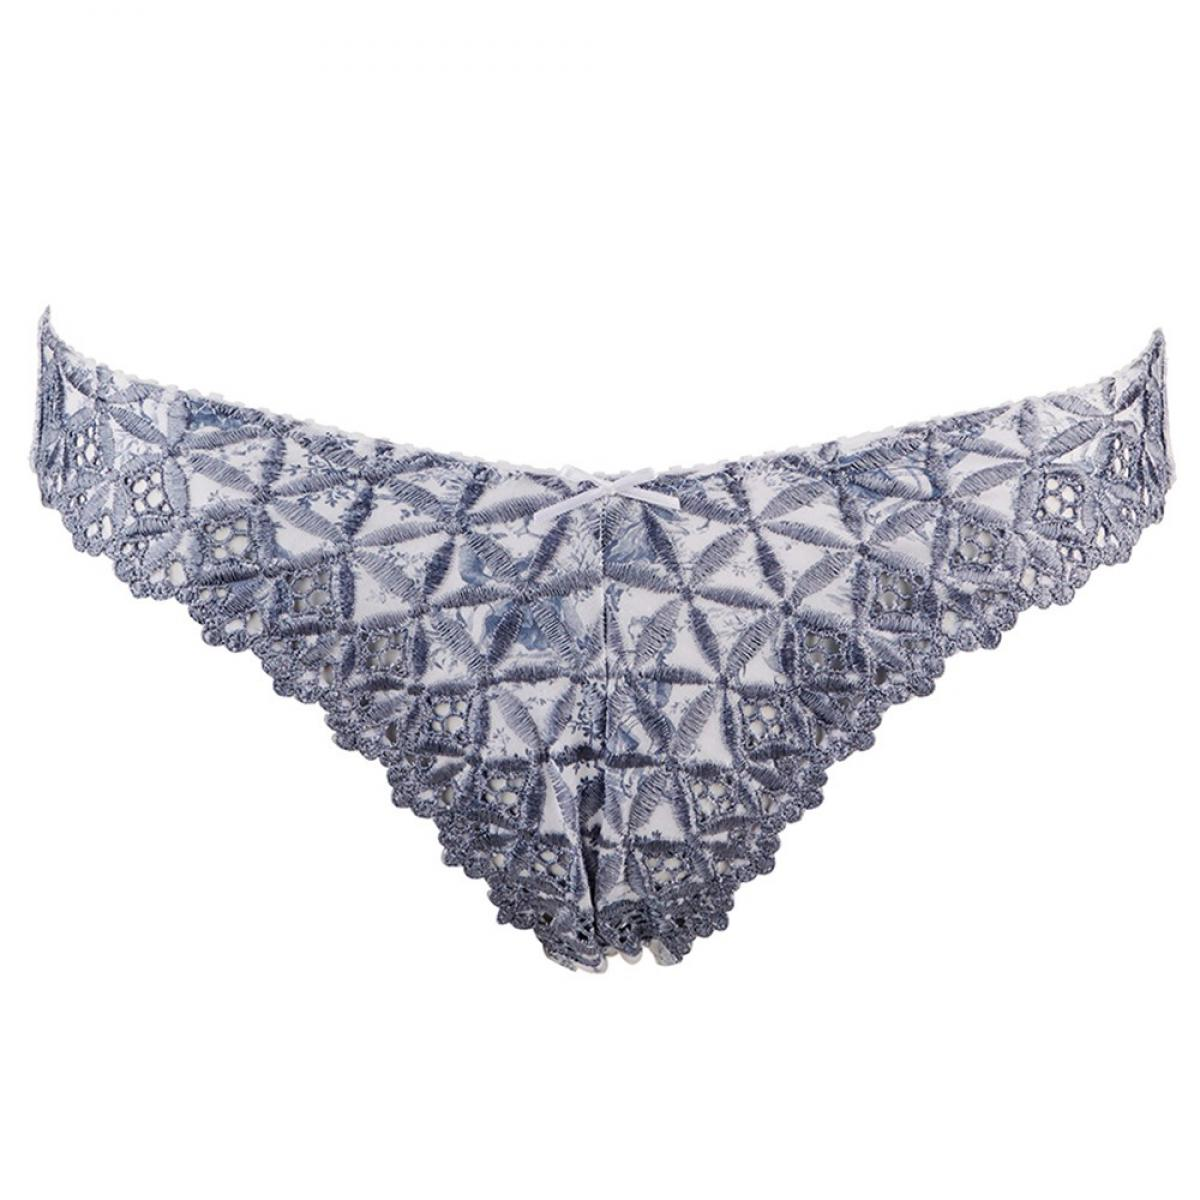 The Iconic Bahia by Aubade Paris French Lingerie Fall 2017